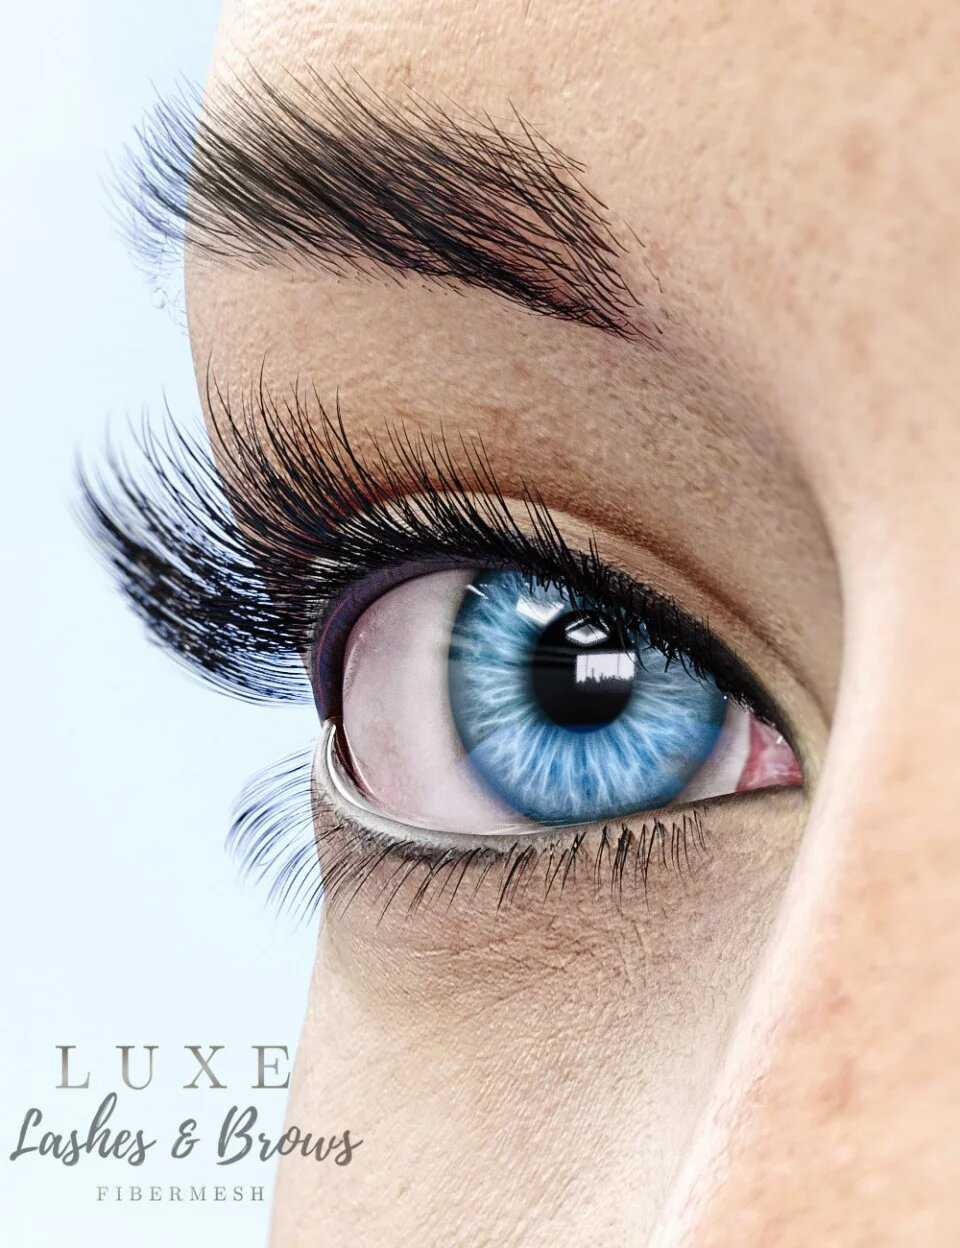 LUXE – Fibermesh Lashes and Brows